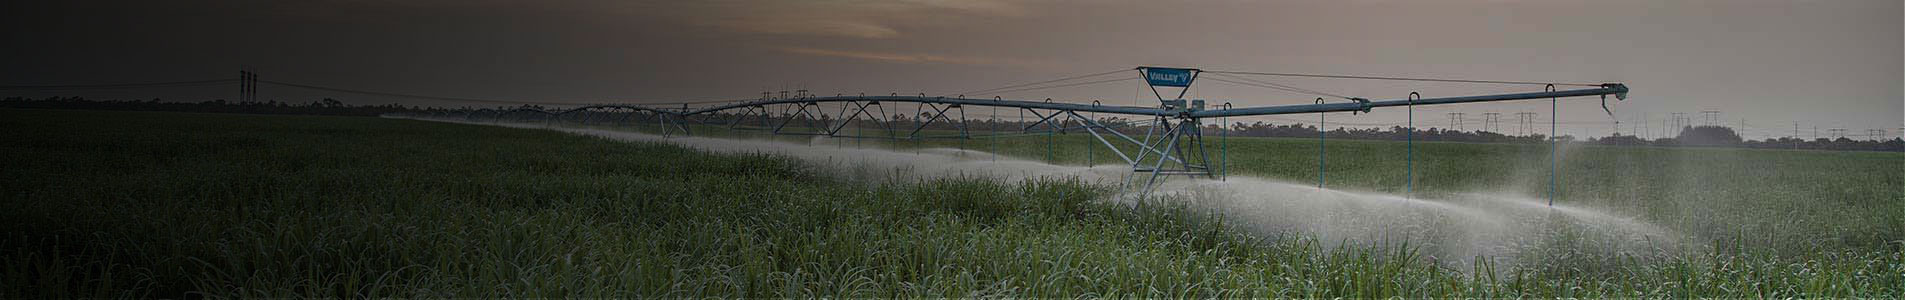 valley rainger linear irrigation machine